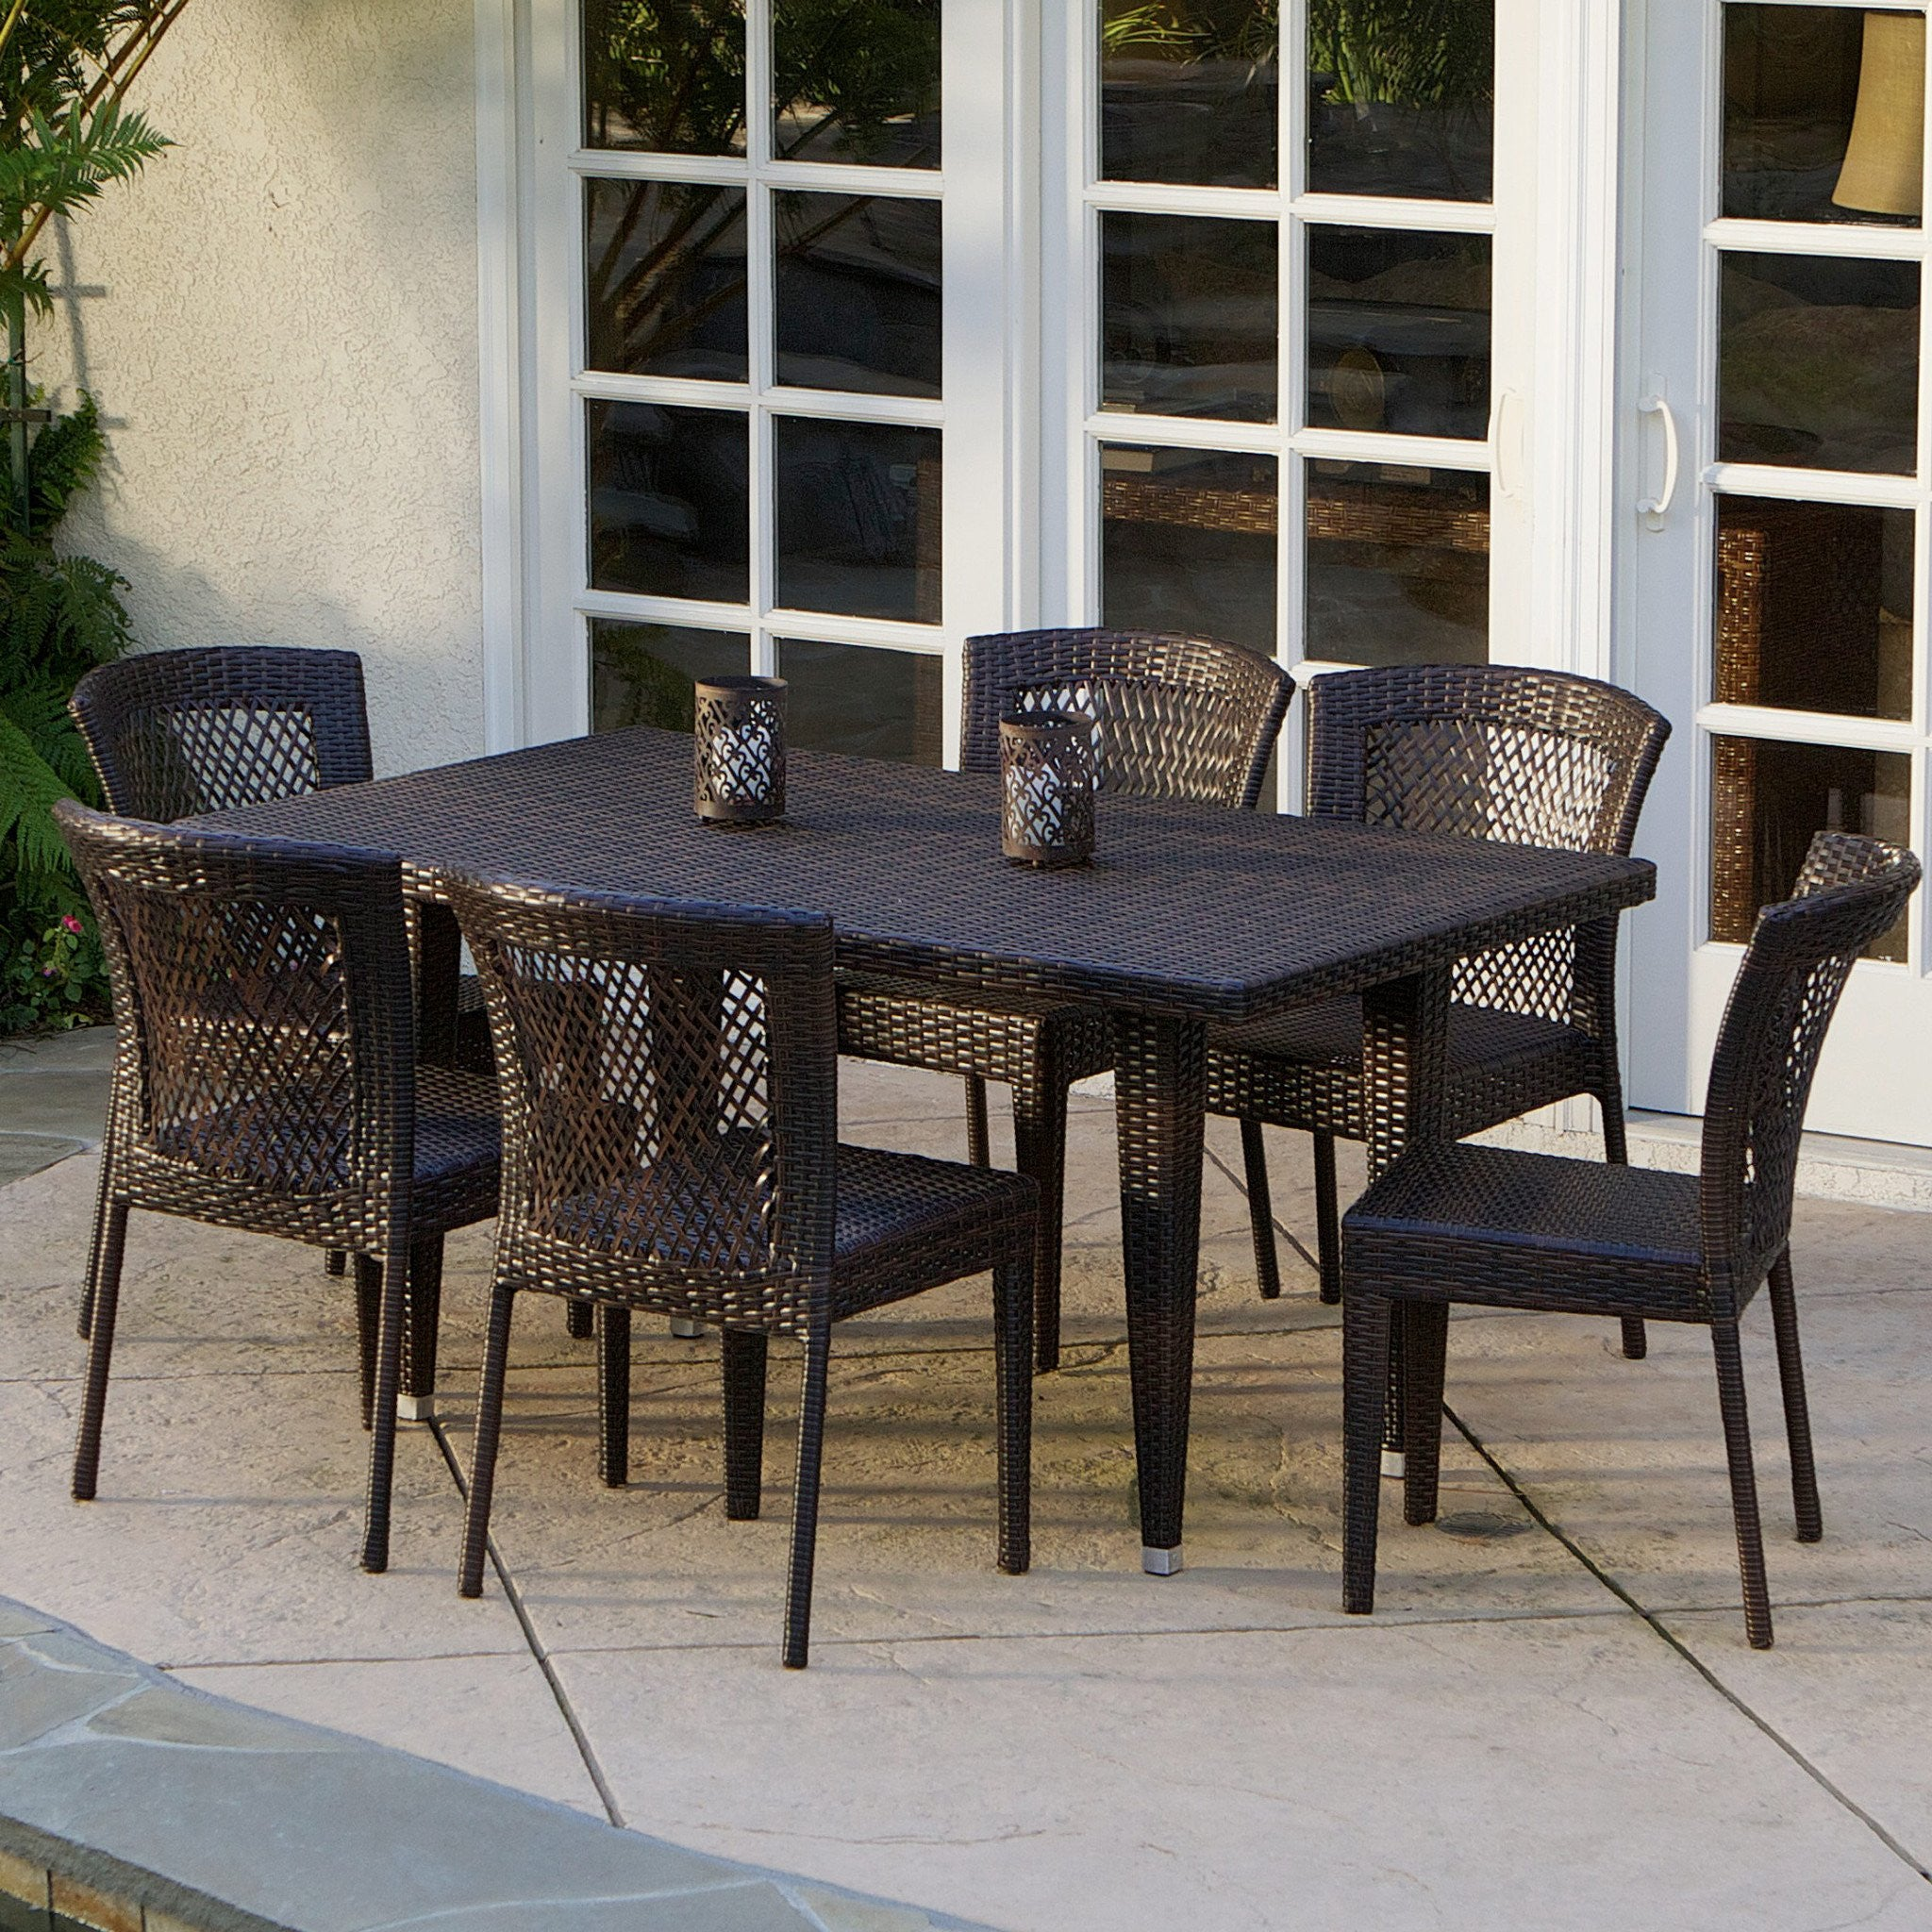 Point Outdoor Patio Furniture Brown Wicker Dining Set foto